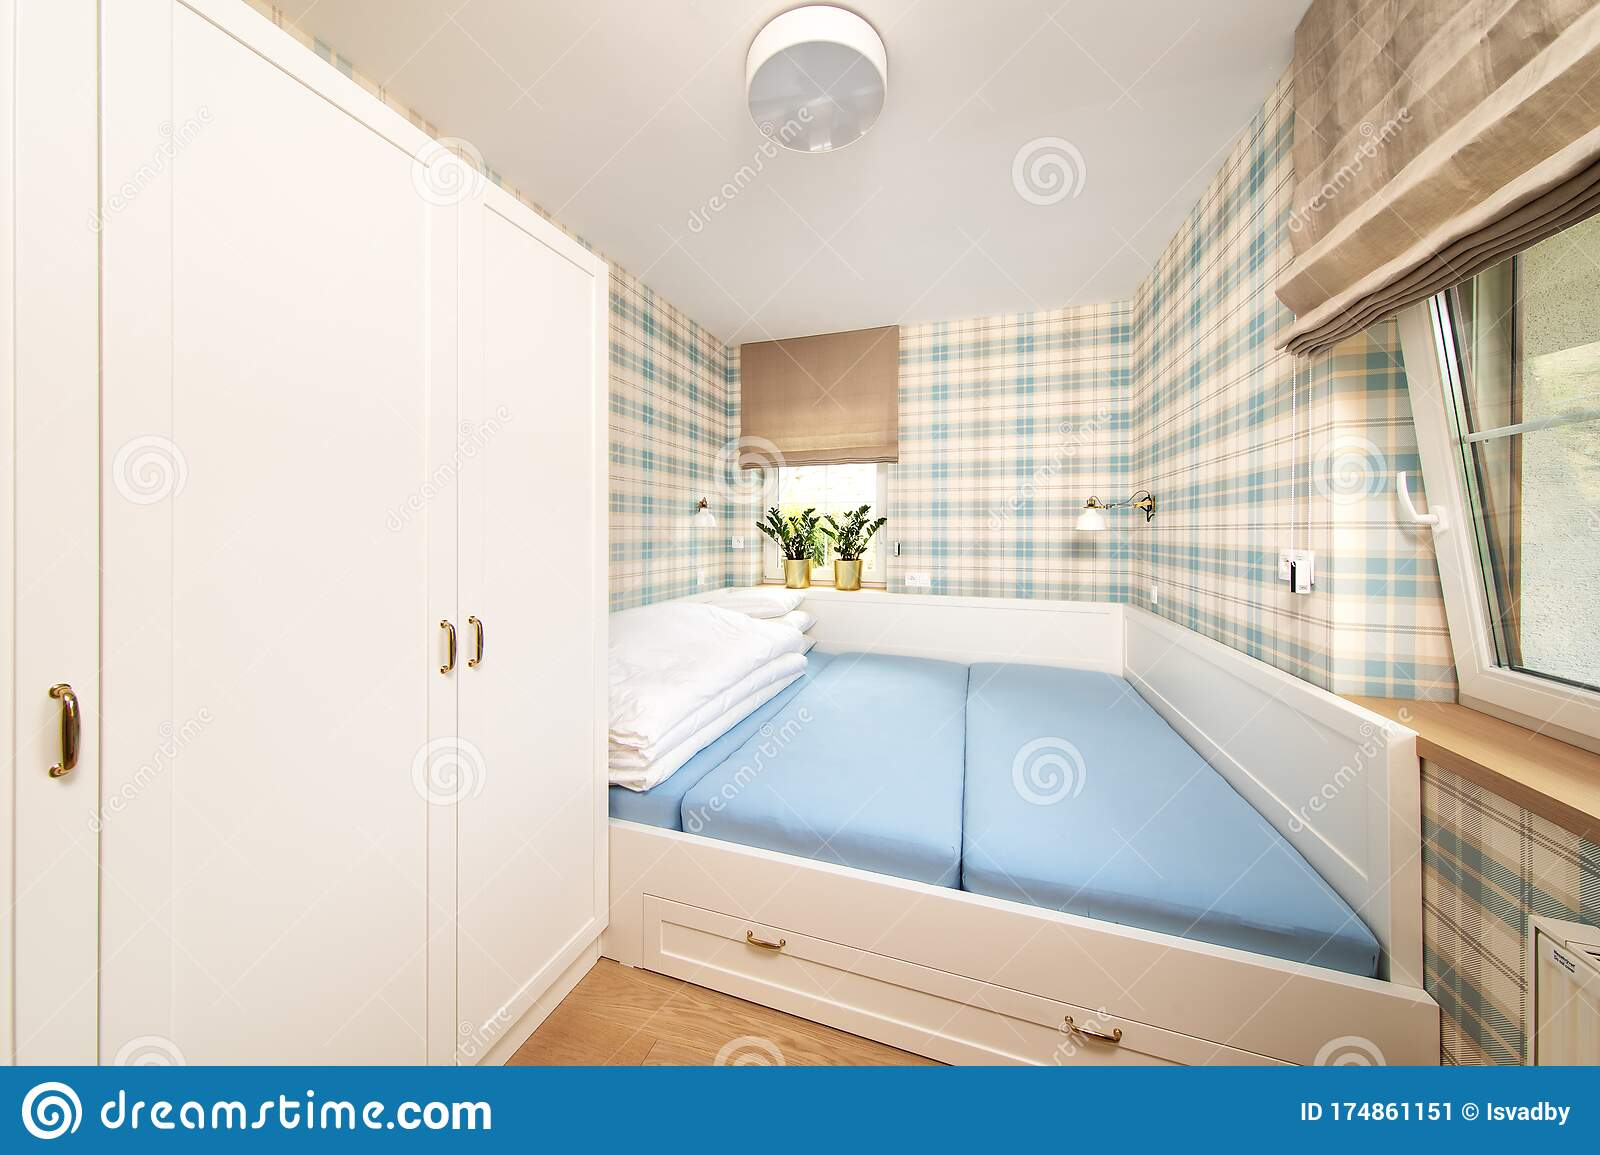 7 930 Light Blue Bedroom Photos Free Royalty Free Stock Photos From Dreamstime